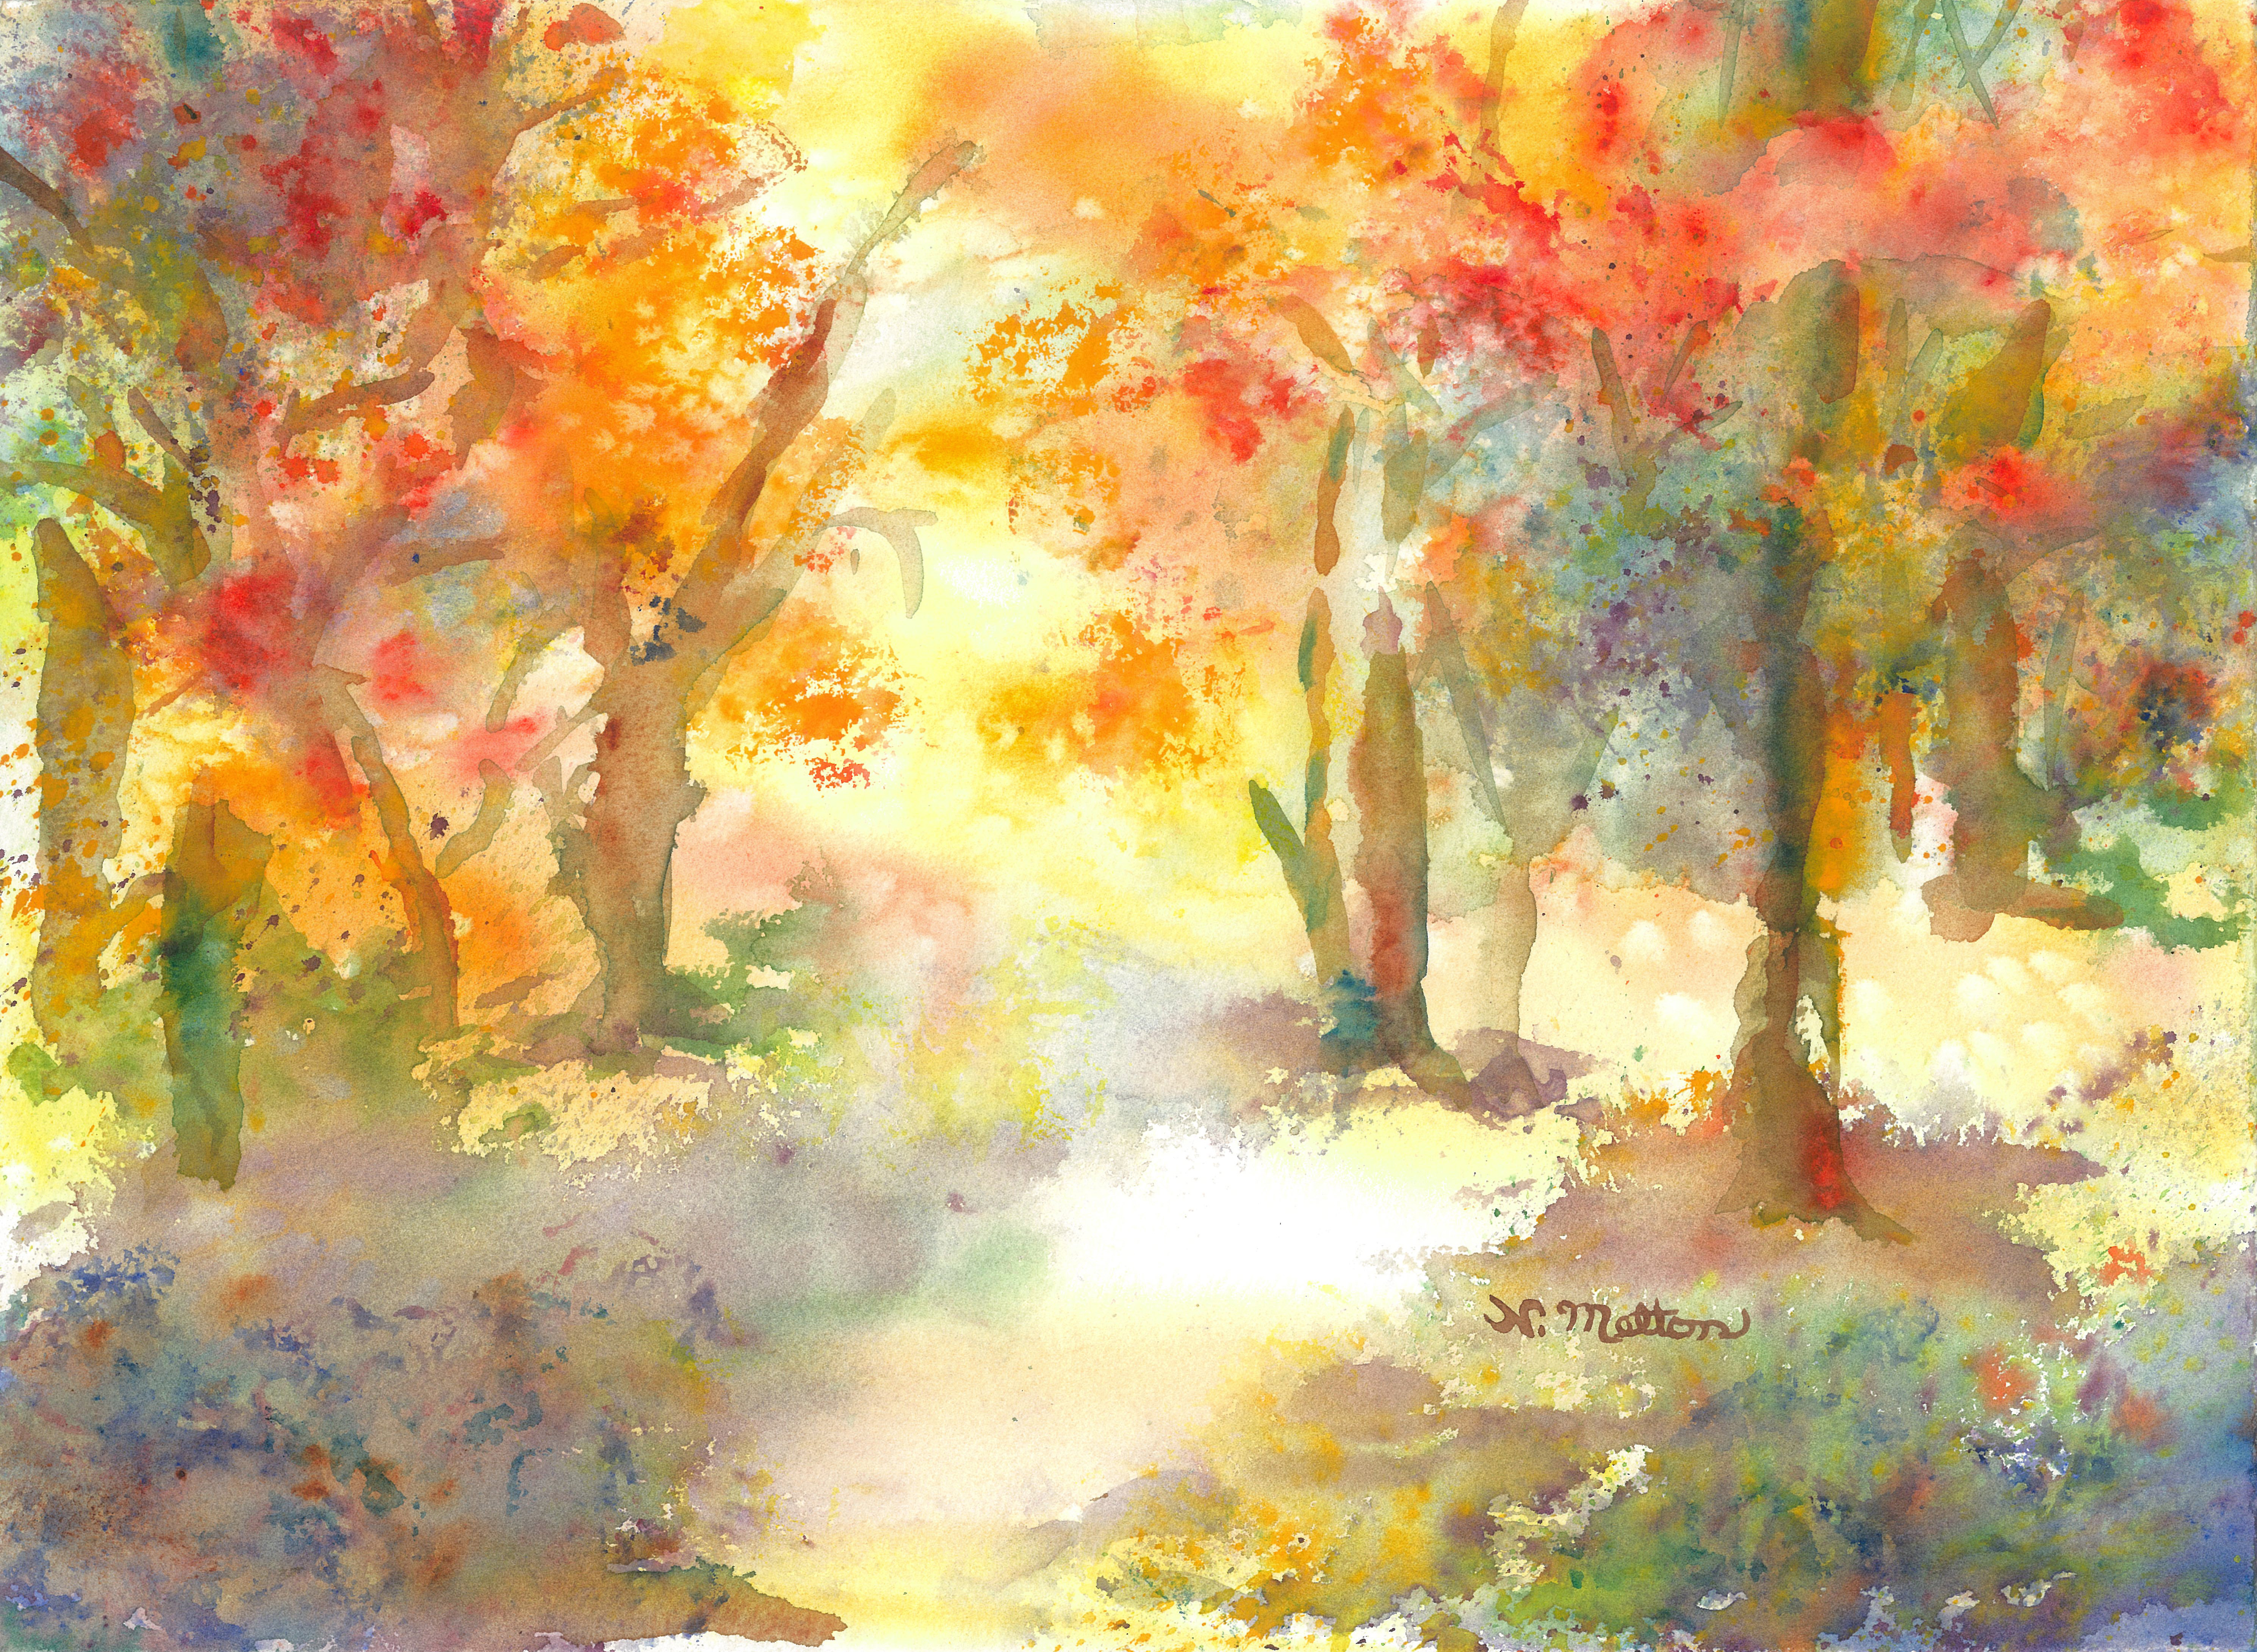 Nancy Melton's Fall Foliage in Watercolor | McNeese State University